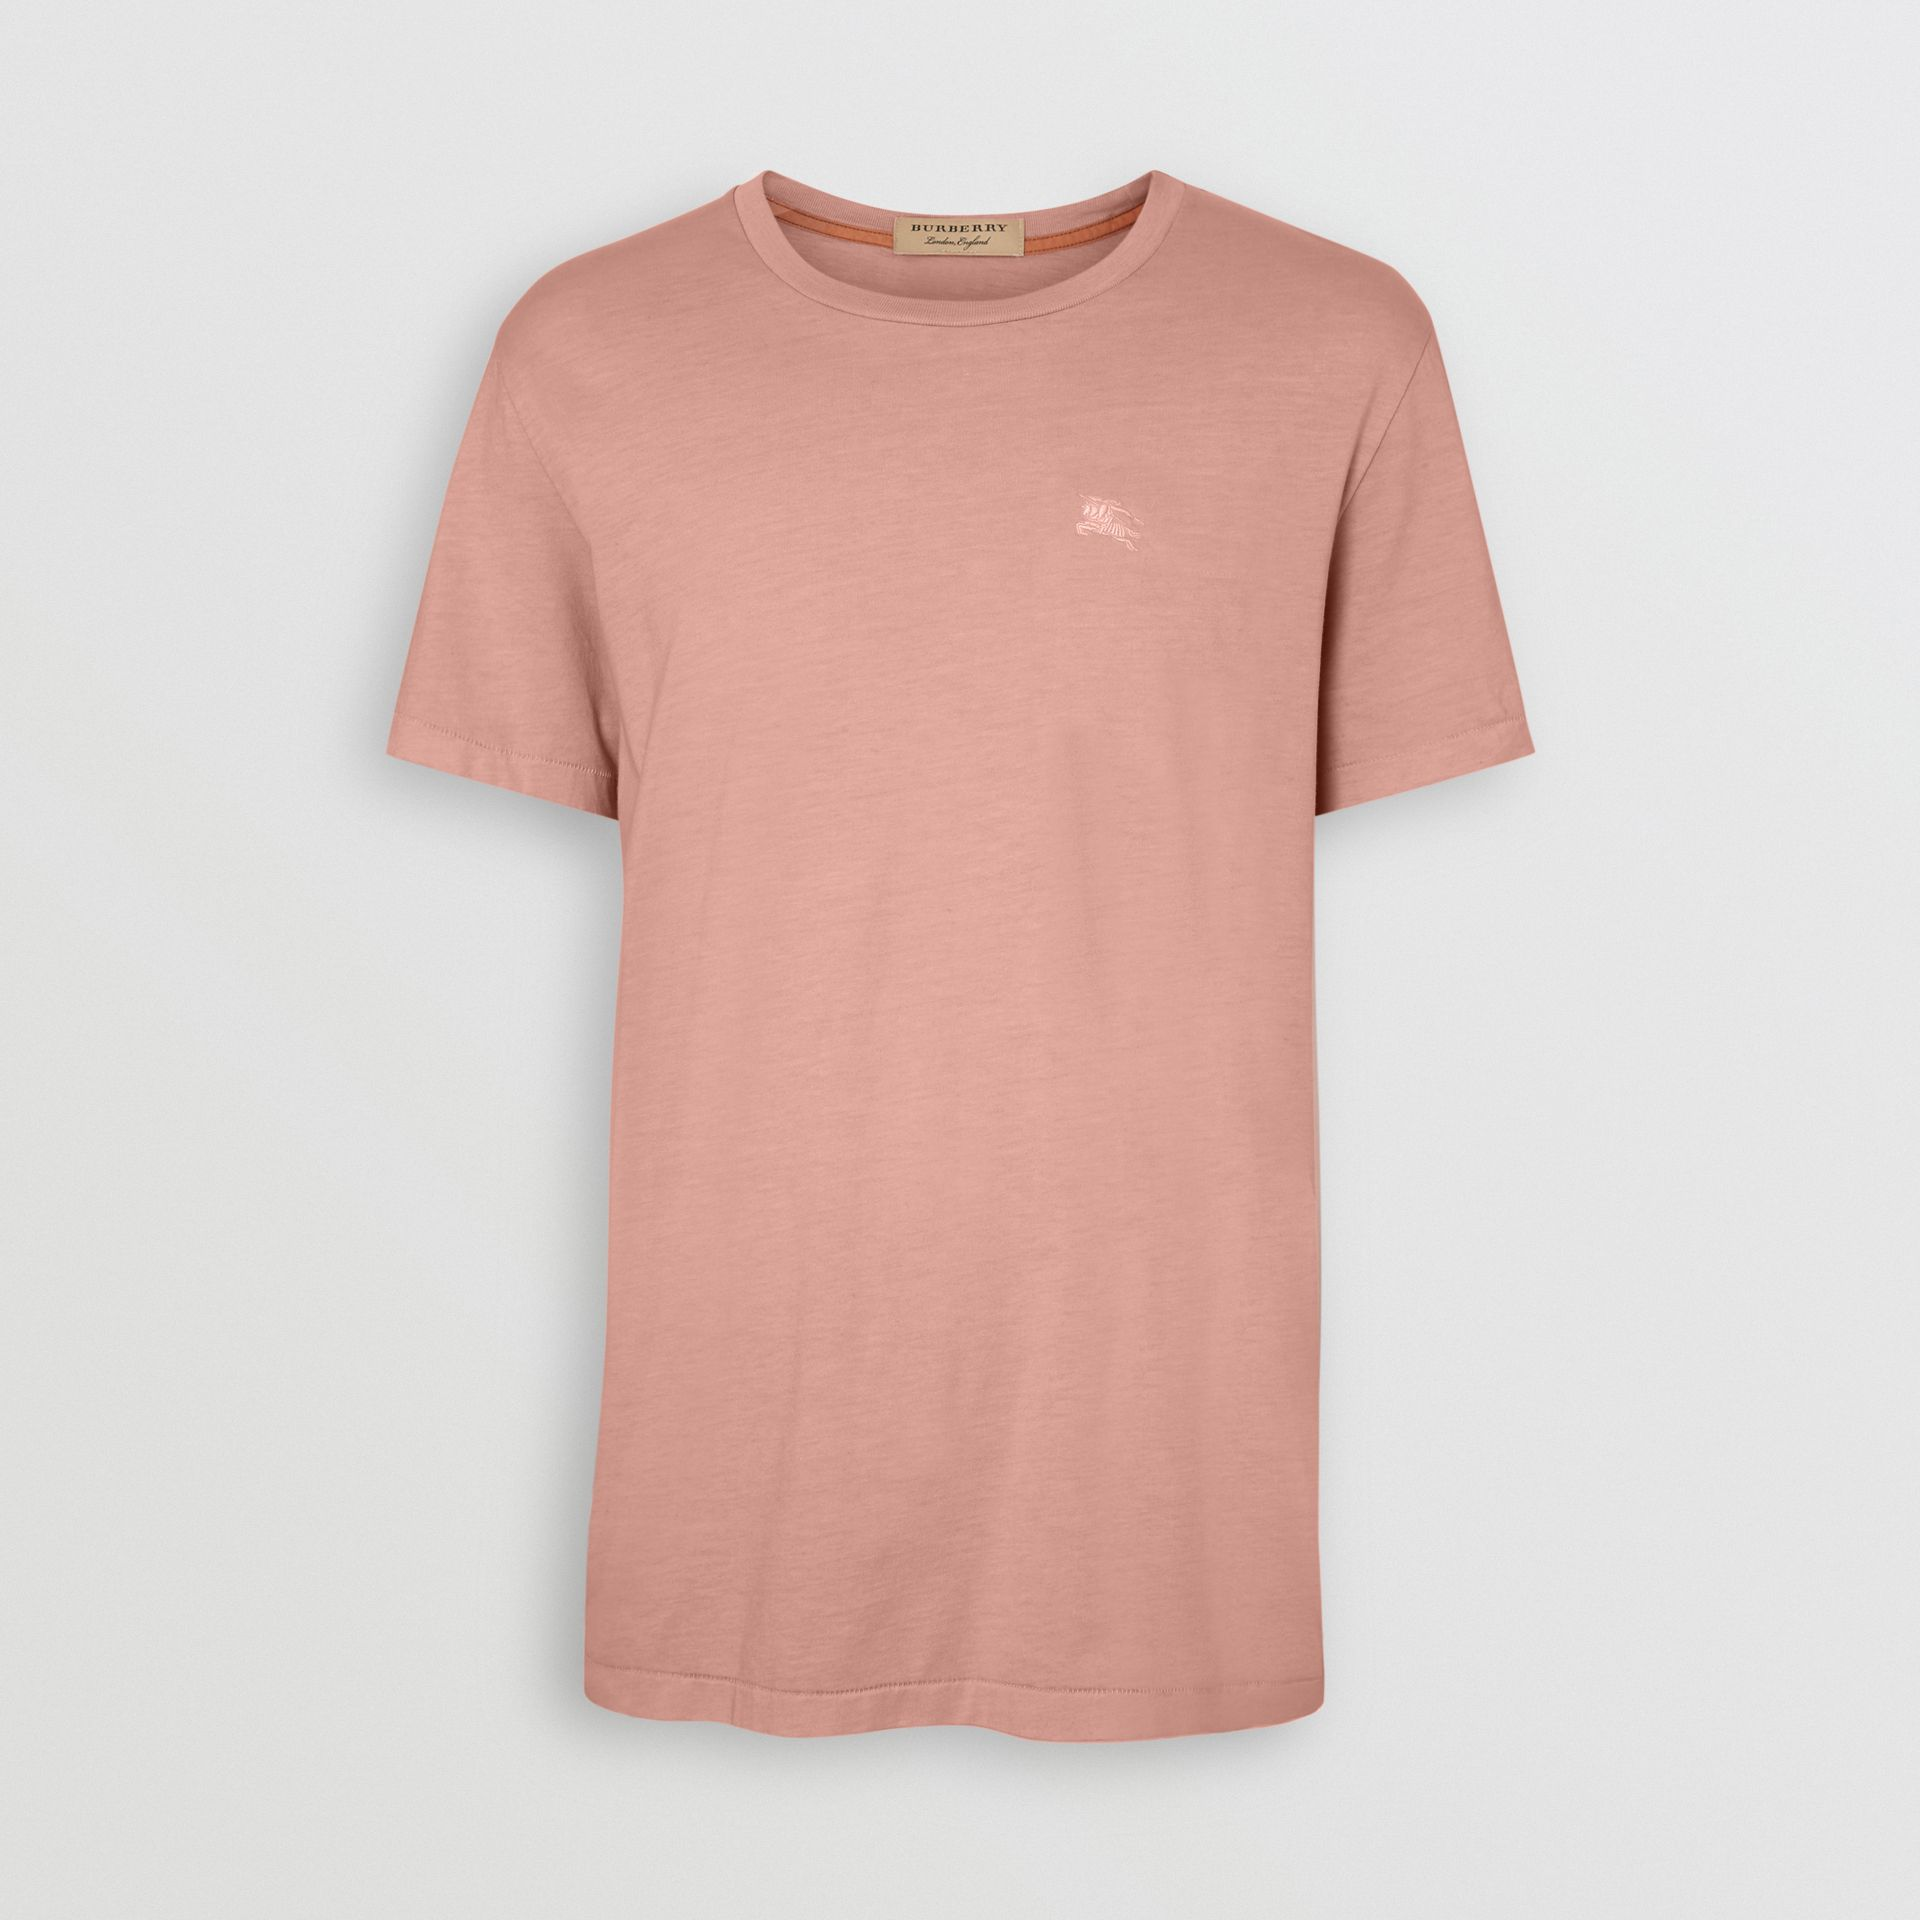 Cotton T-shirt in Chalk Pink - Men | Burberry - gallery image 3